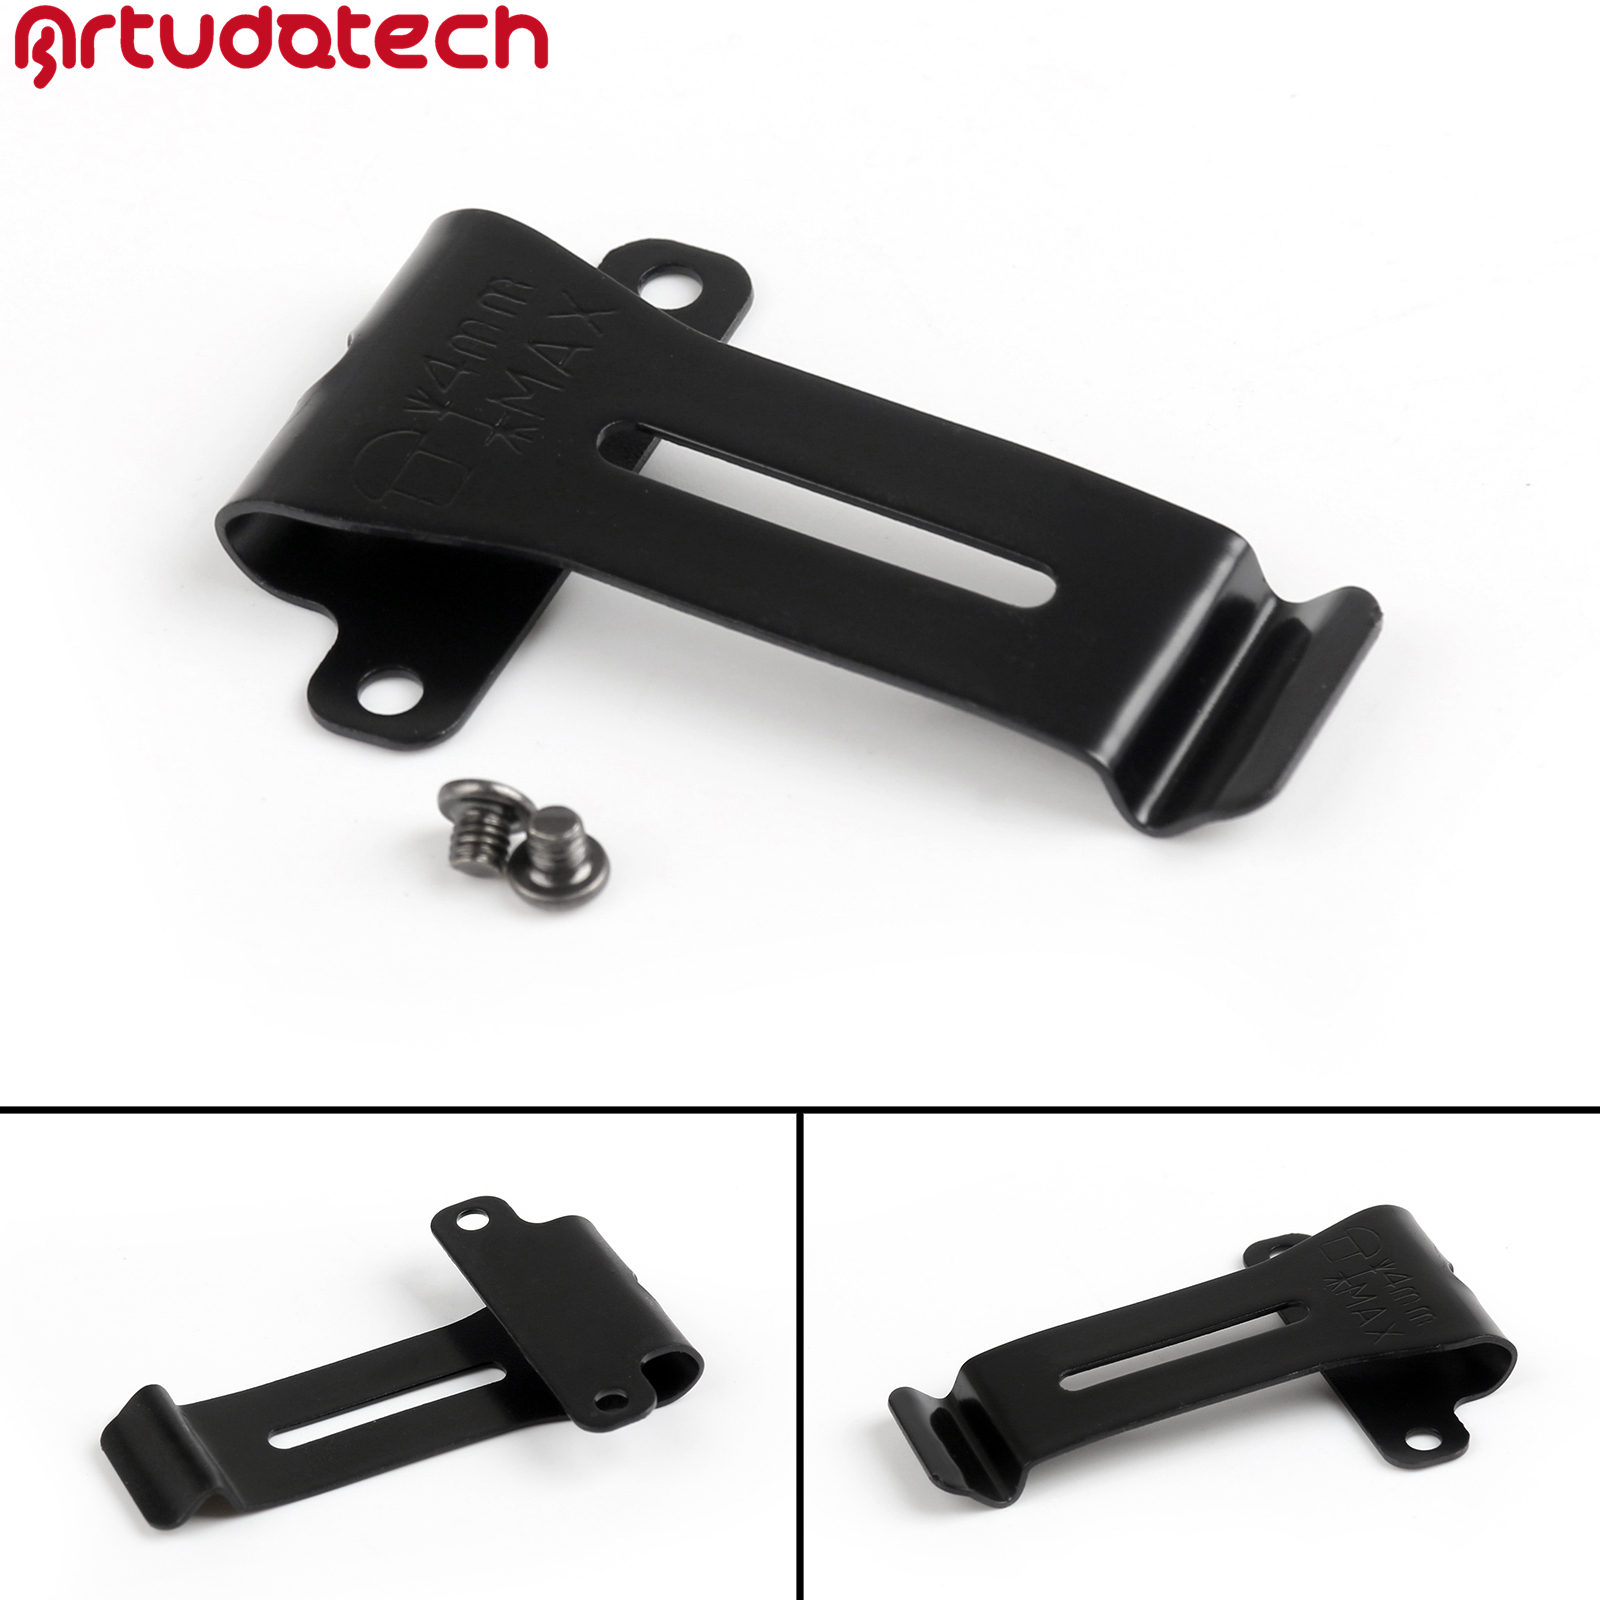 Artudatech 1x Metal Belt Clip For Kenwood TK-208 TK-308 TH-22AT TH-42AT BF-888S BF-666s BF-777S Accessories